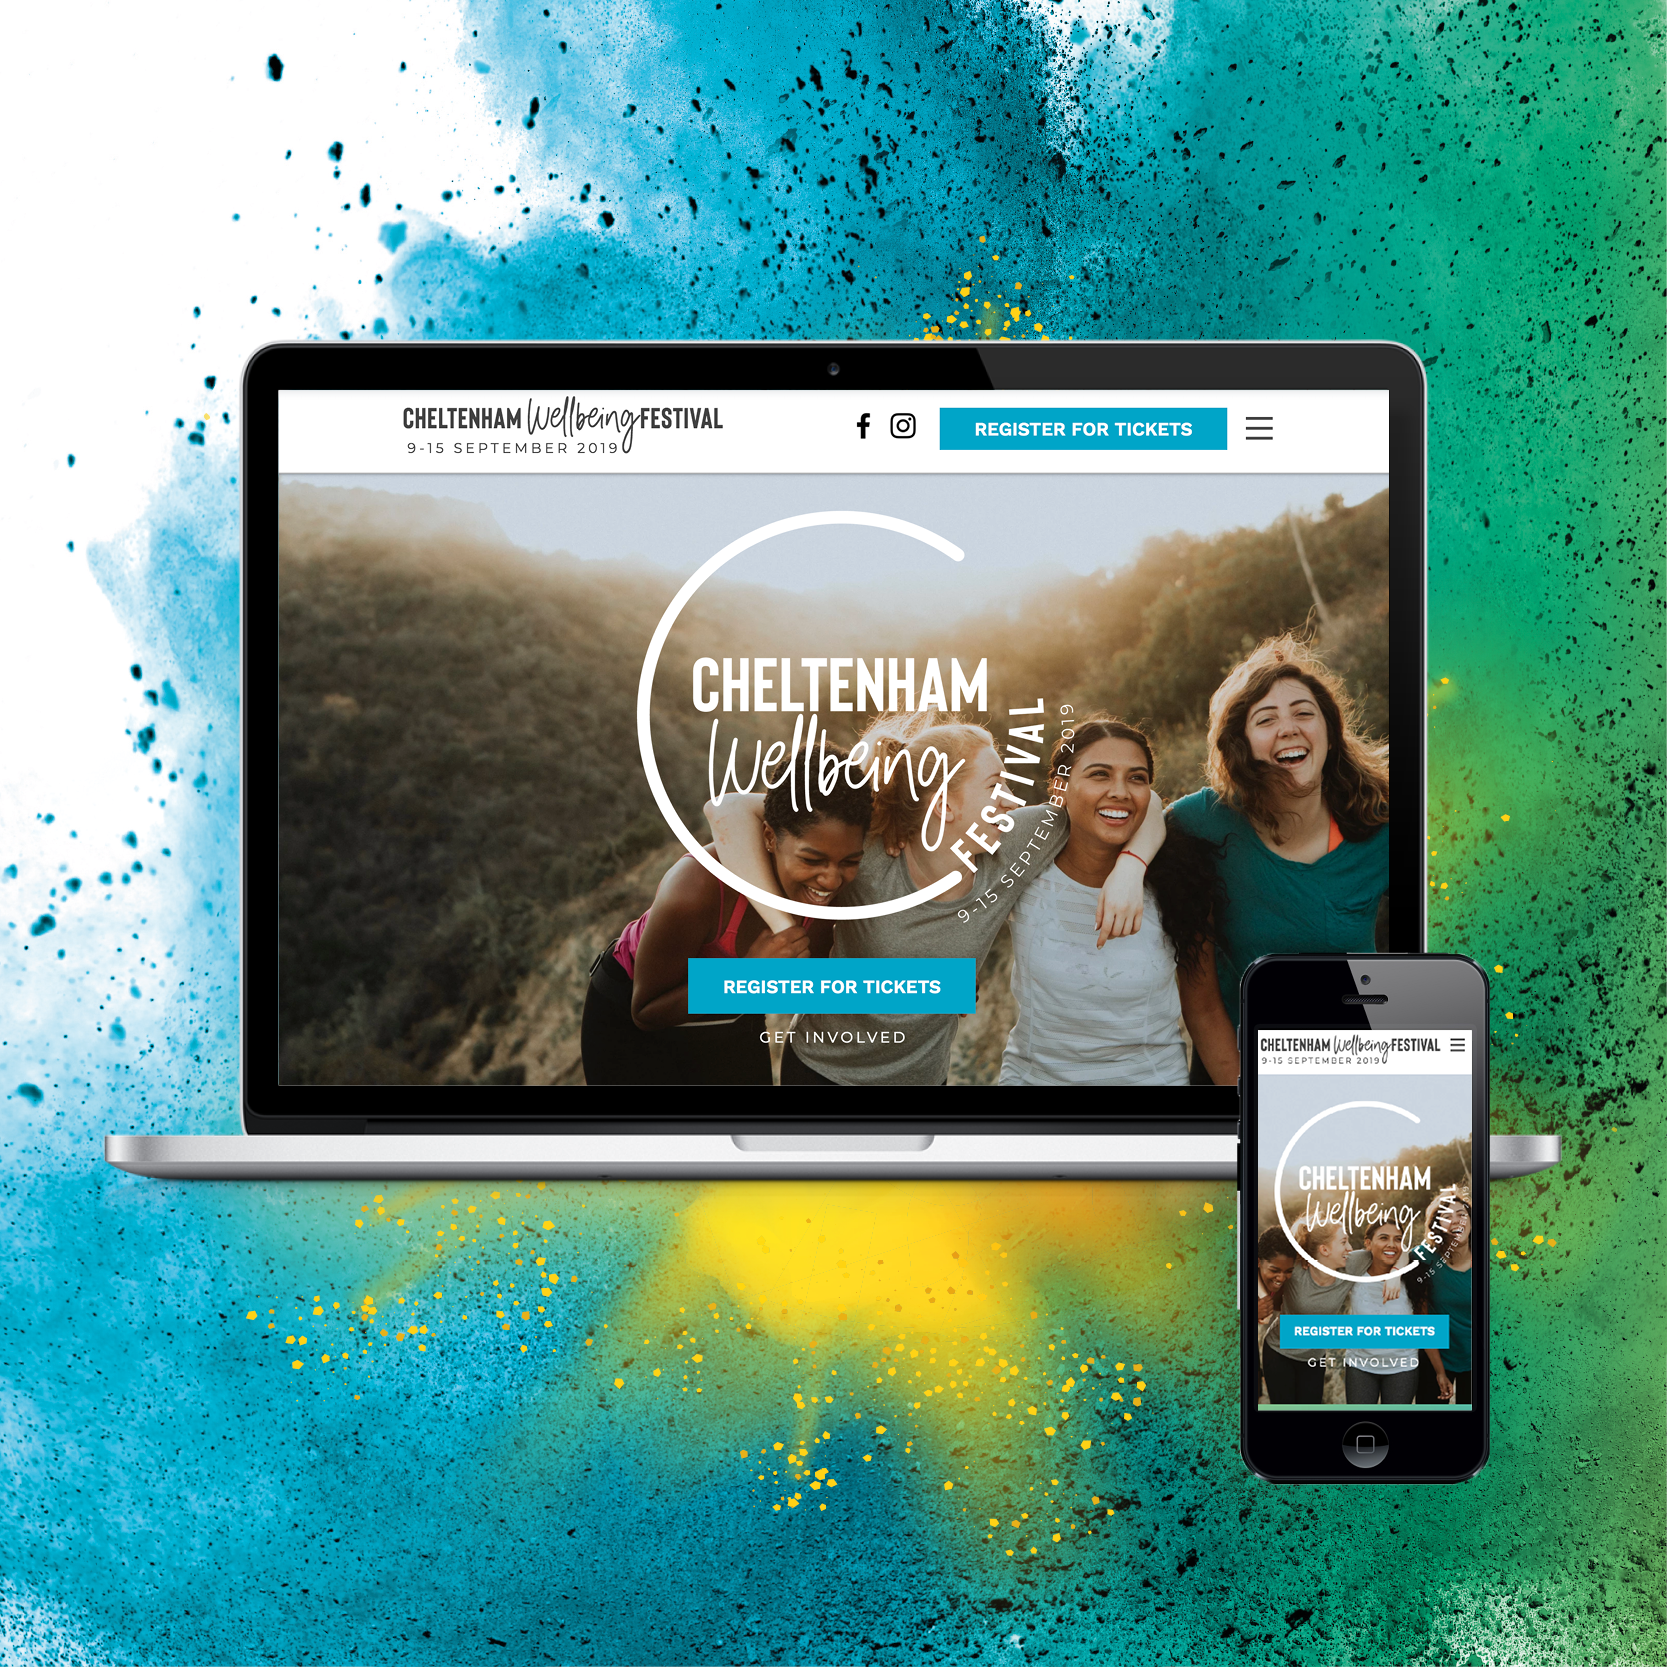 Website Created For Cheltenham Wellbeing Festival With Images Create Website Digital Marketing Services